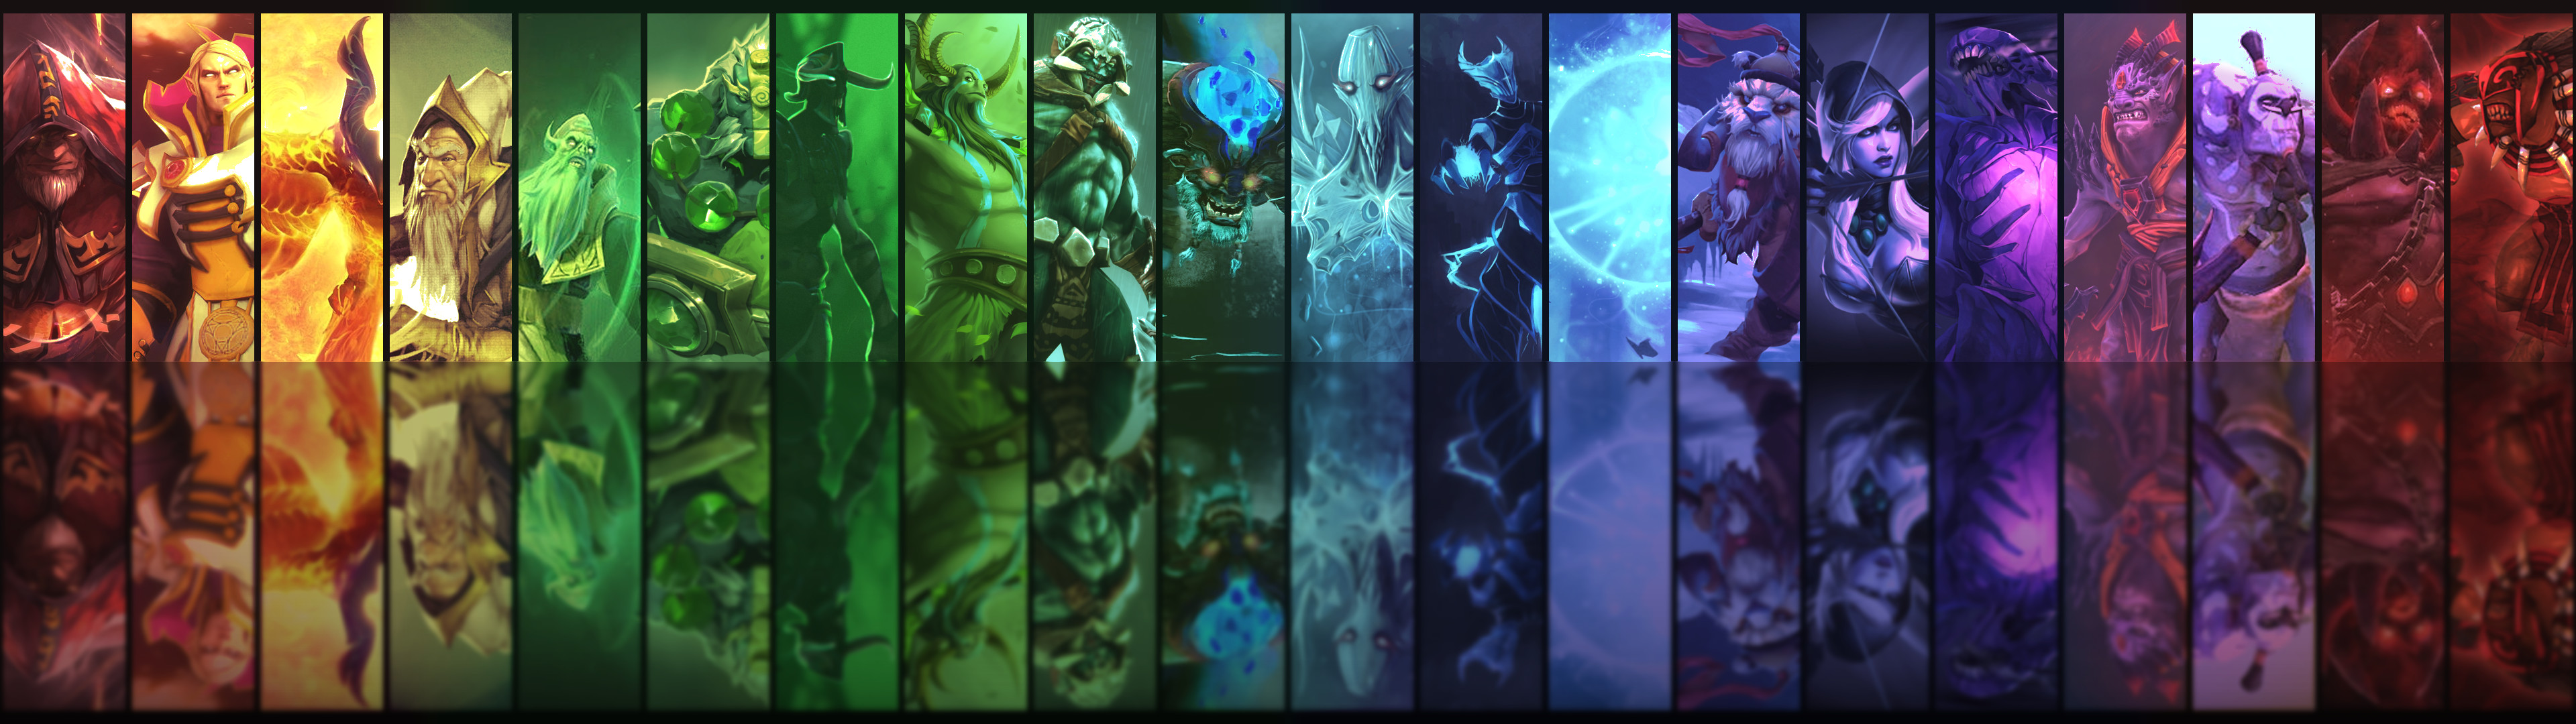 3840x1080 ... Dota2 Heroes Dual Monitor Background by 3i20d99e